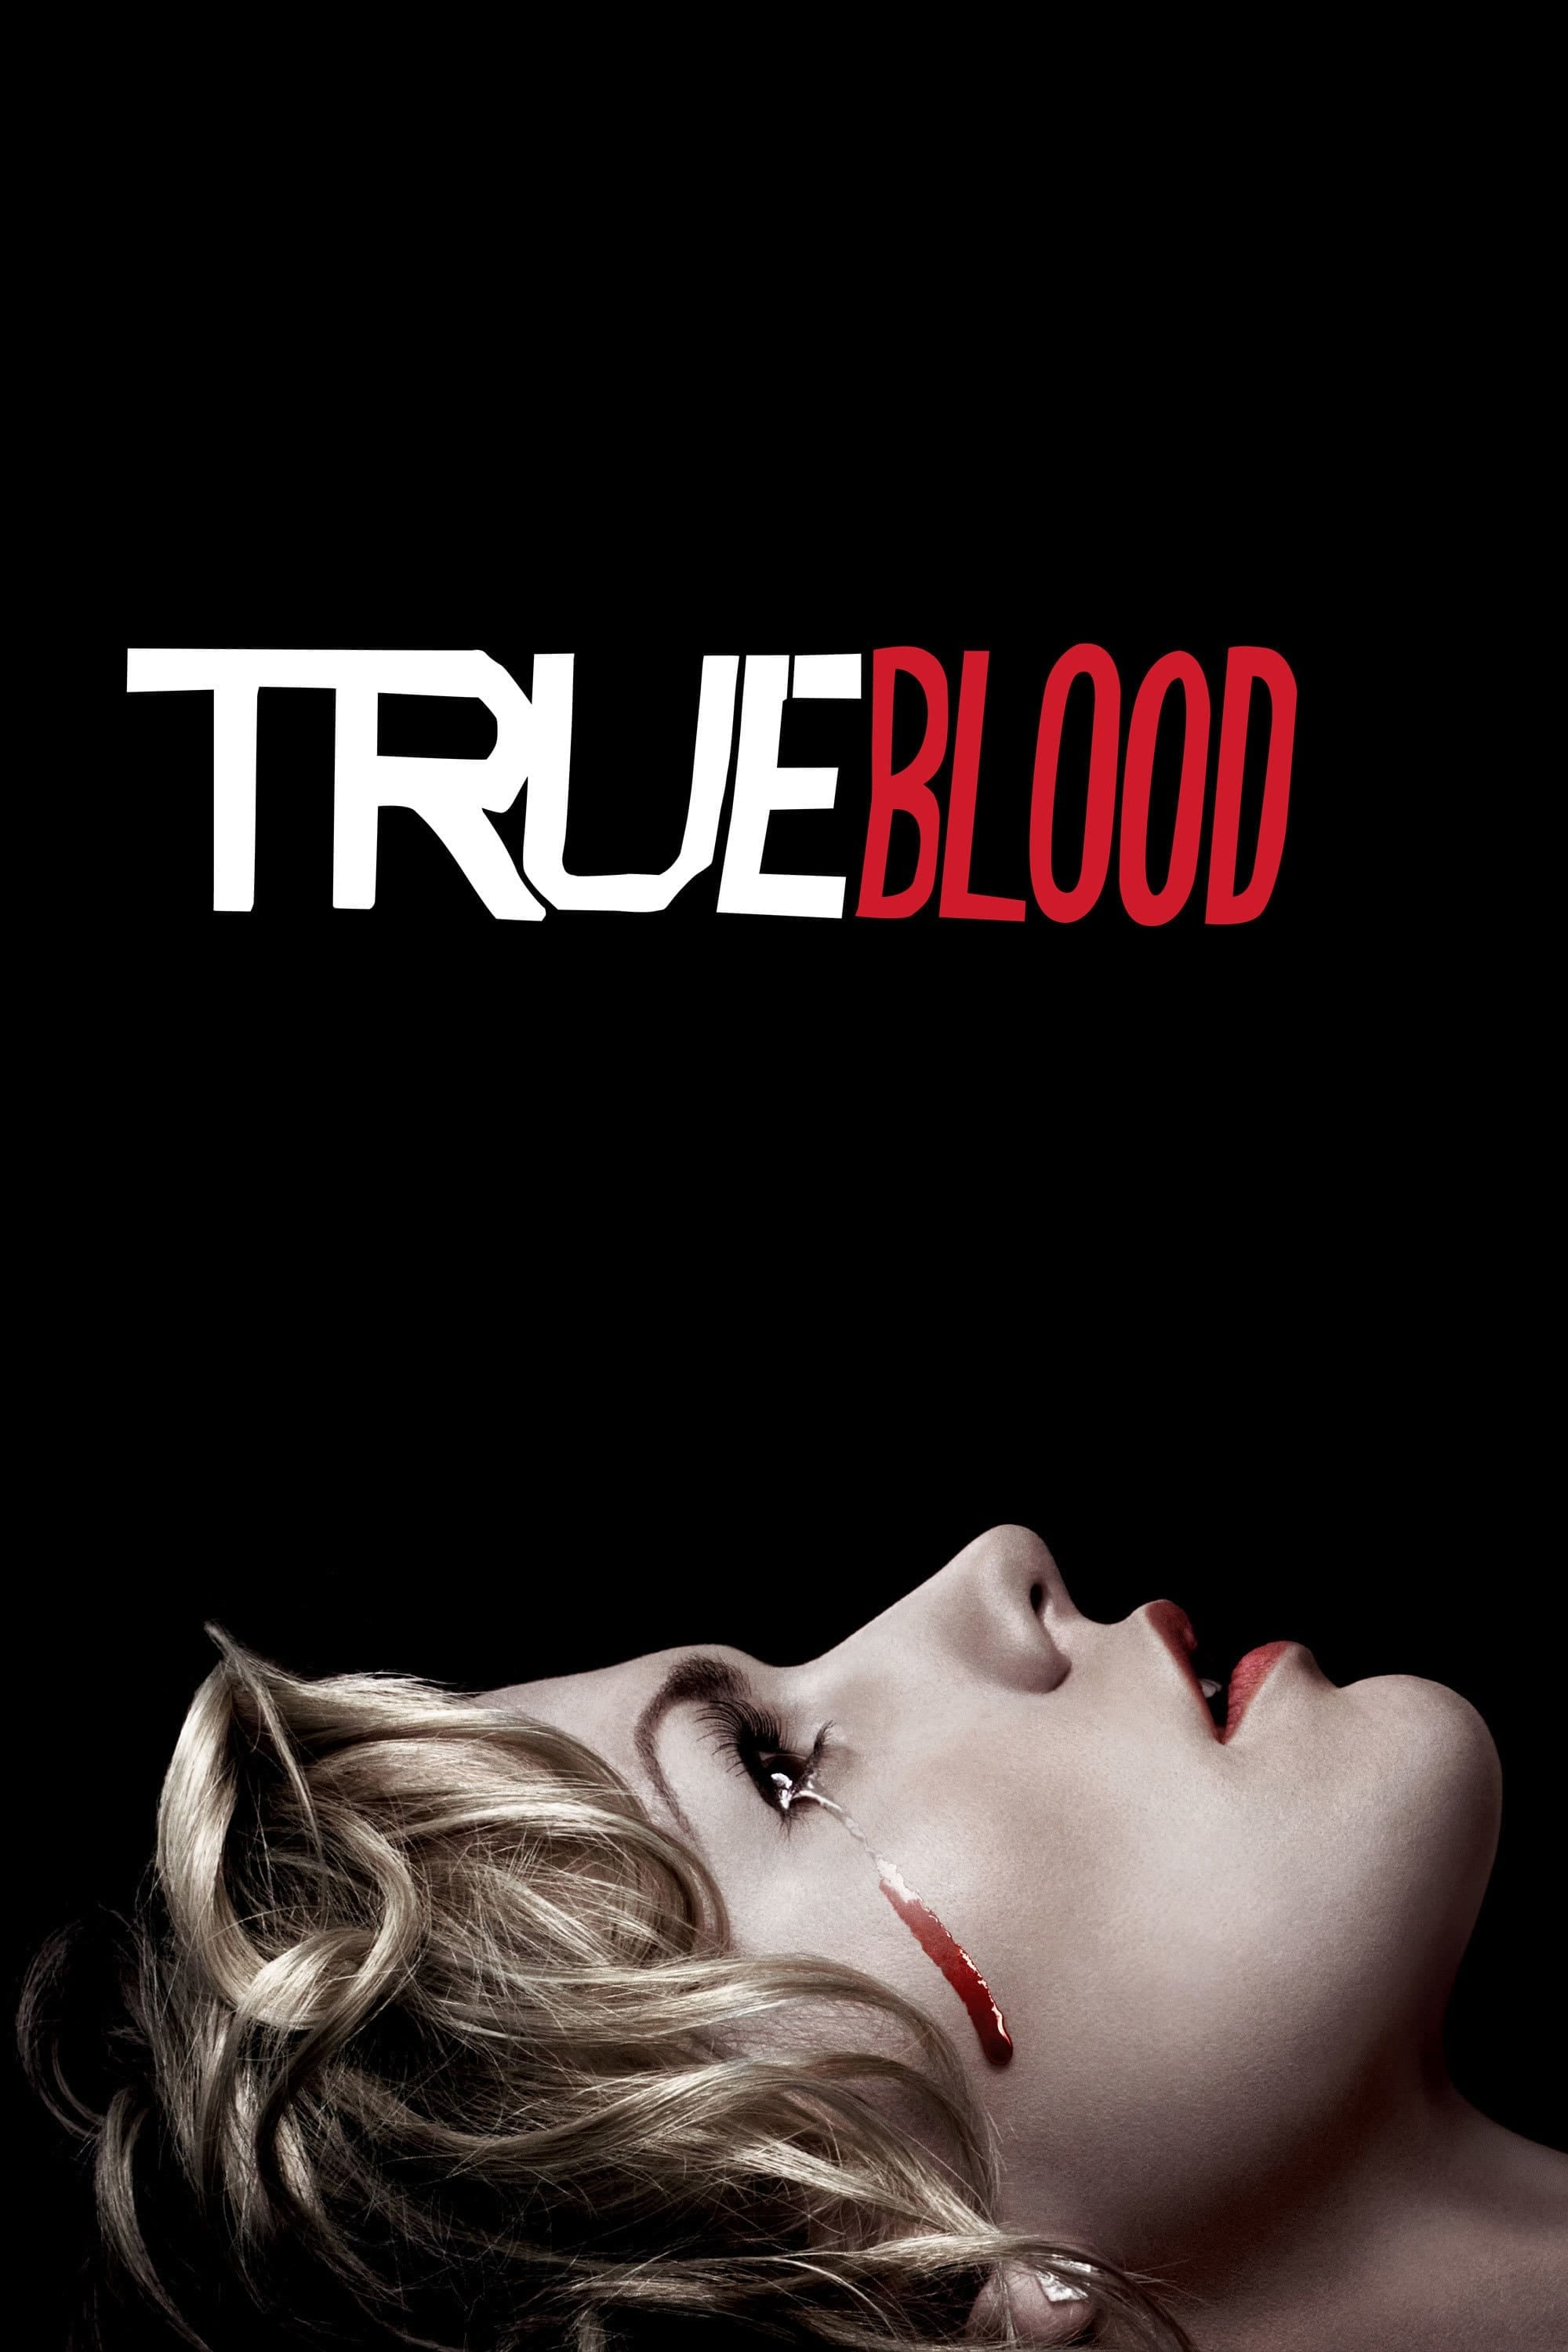 True Blood TV Shows About Undead